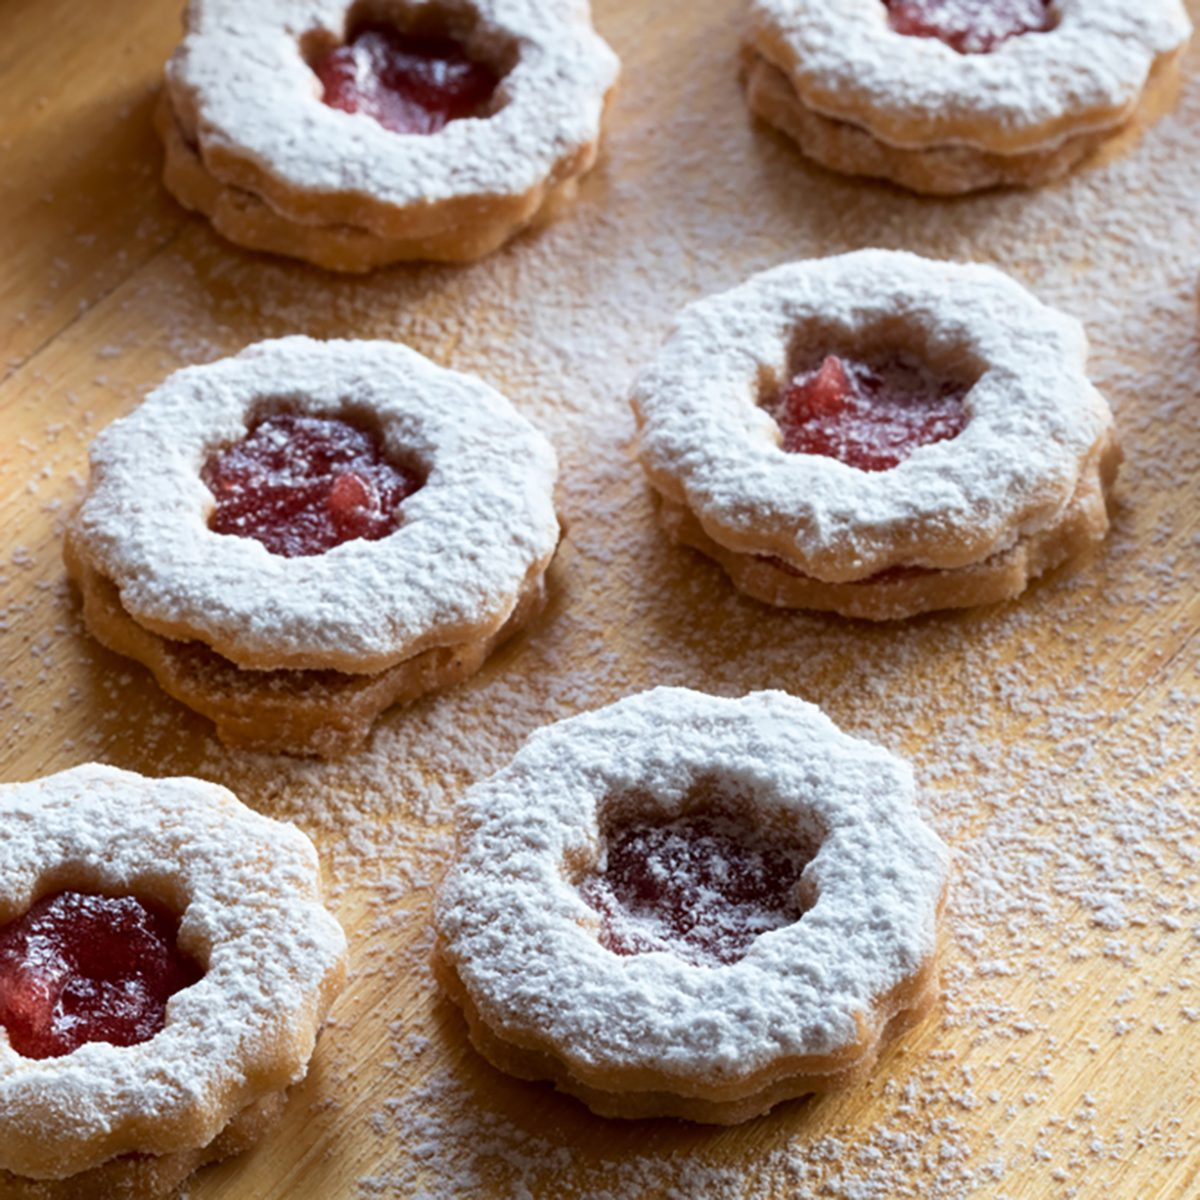 Trraditional Linzer Christmas cookies filled with marmalade and dusted with sugar